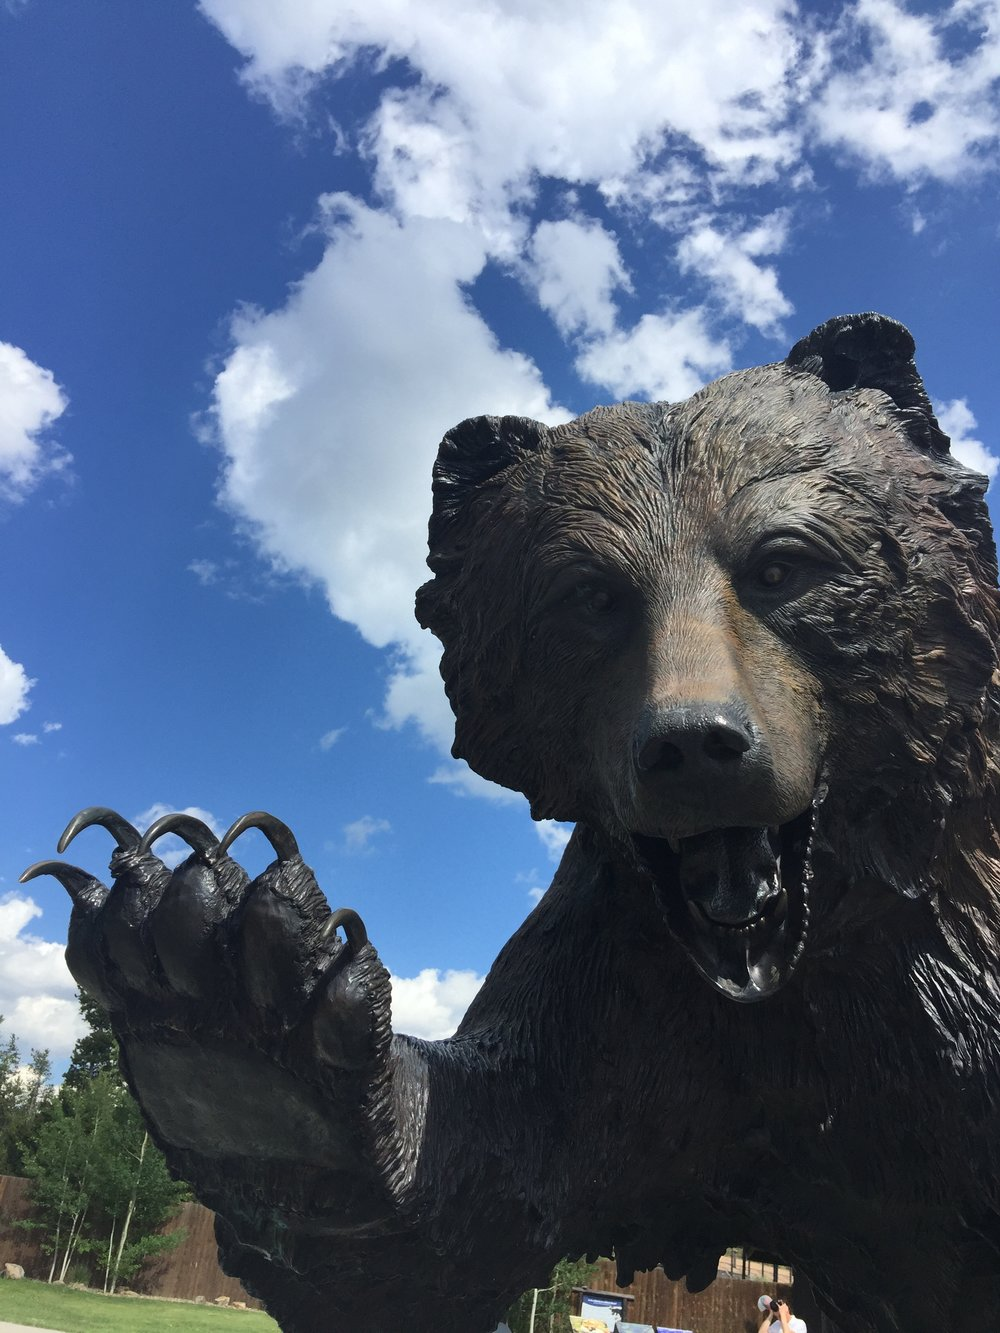 One of many beautiful life-sized animal sculptures in West Yellowstone.  This one's at the Grizzly and Wolf Discovery Center.